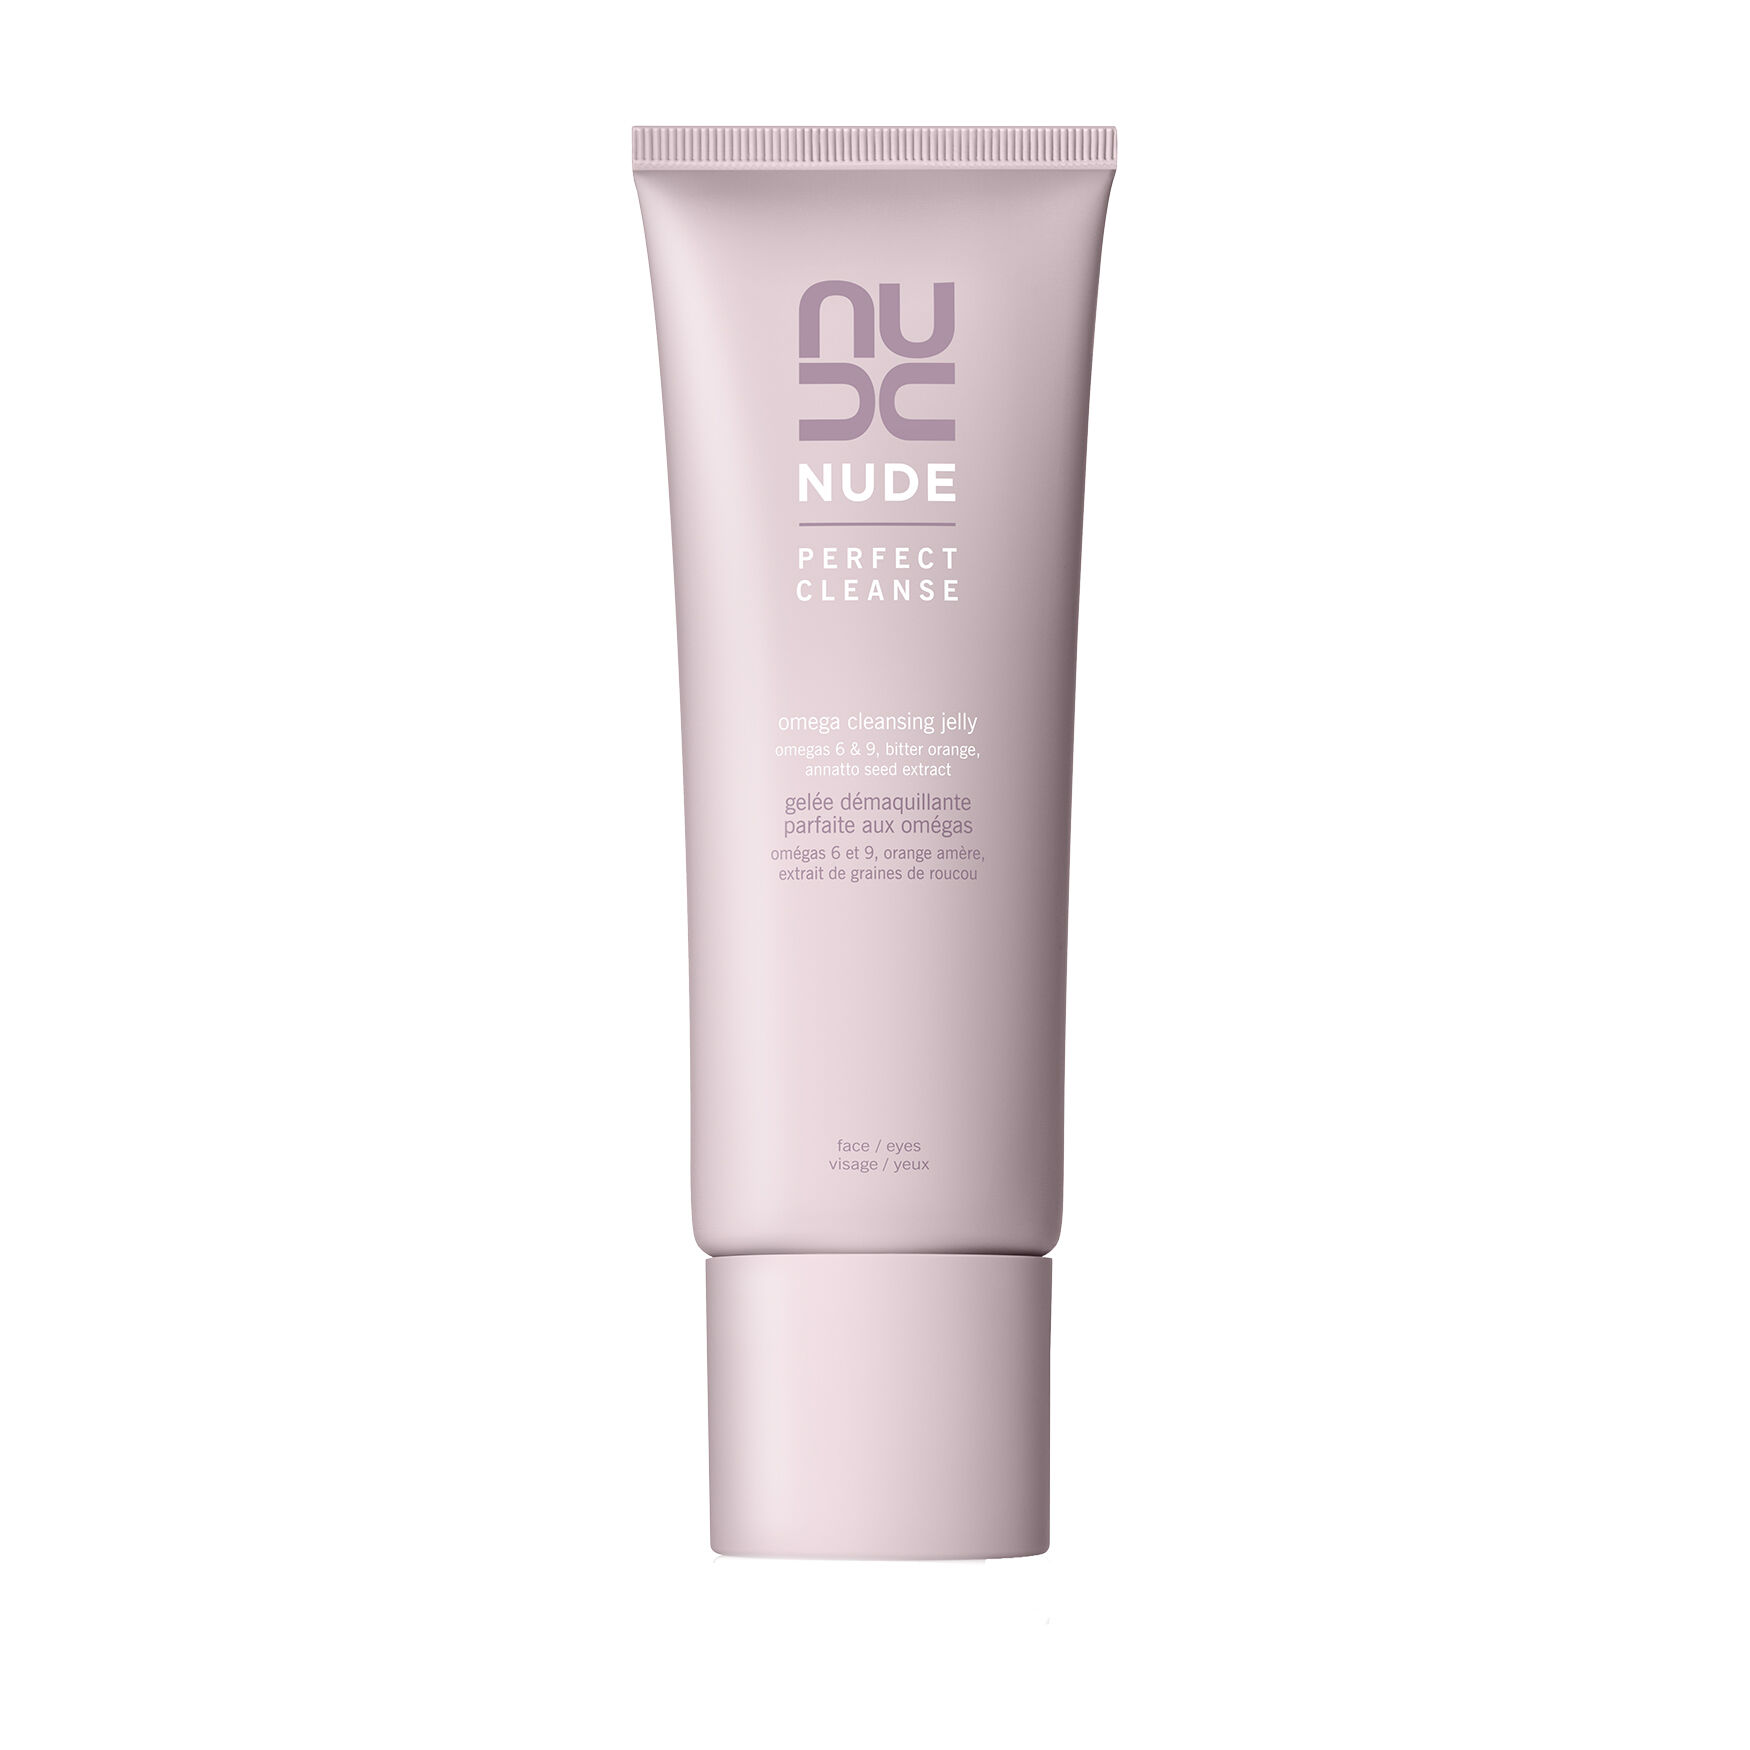 Nude perfect cleanse omega cleansing jelly photos 25